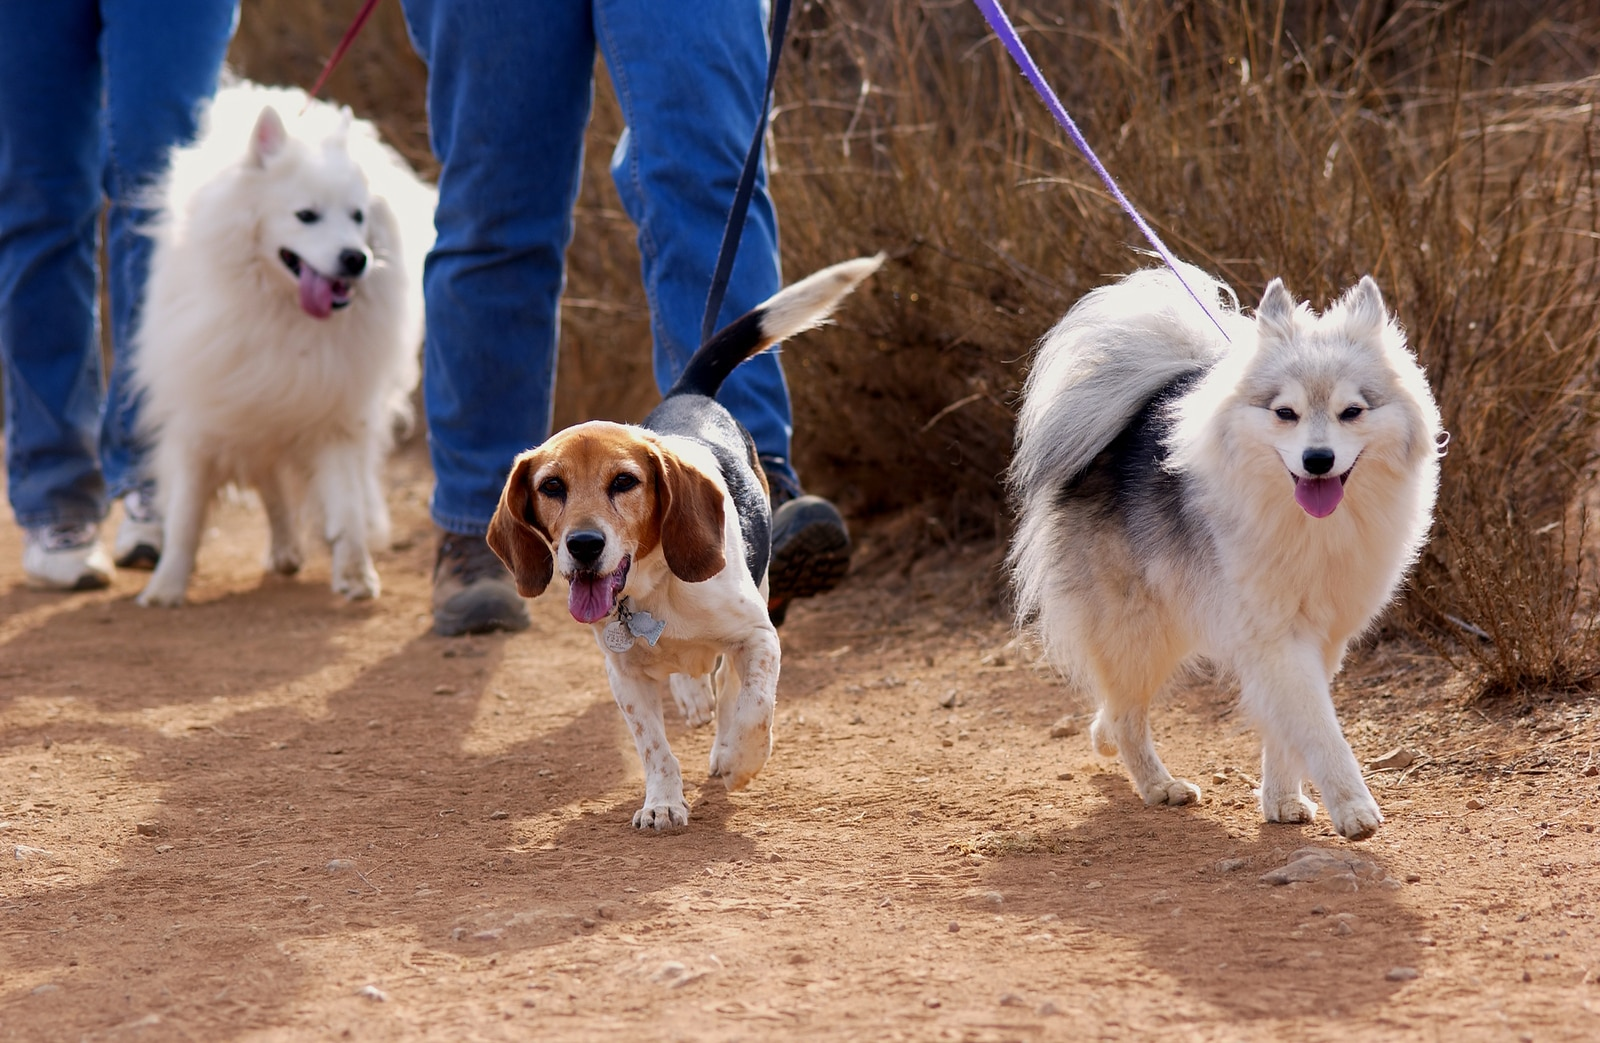 Two fluffy white doges and beagle being walked by two people on a dirt road.